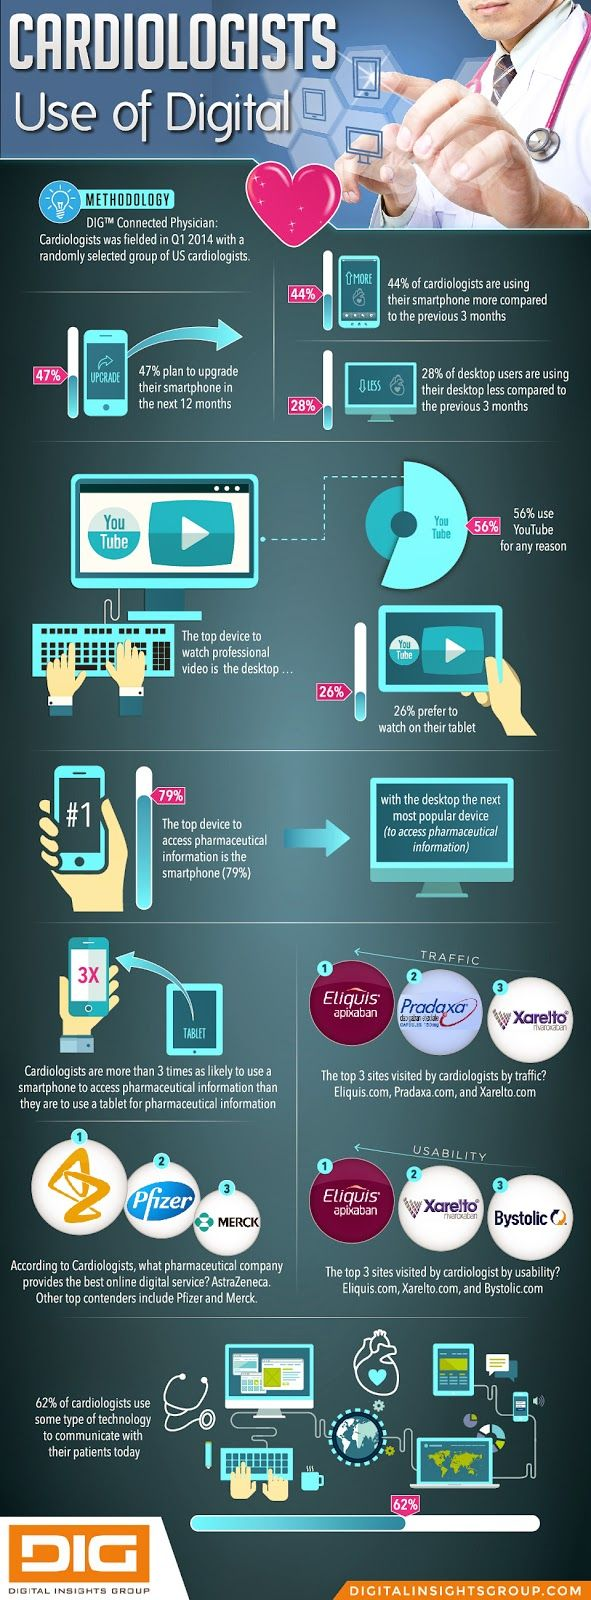 #infographic #digital #cardiologists